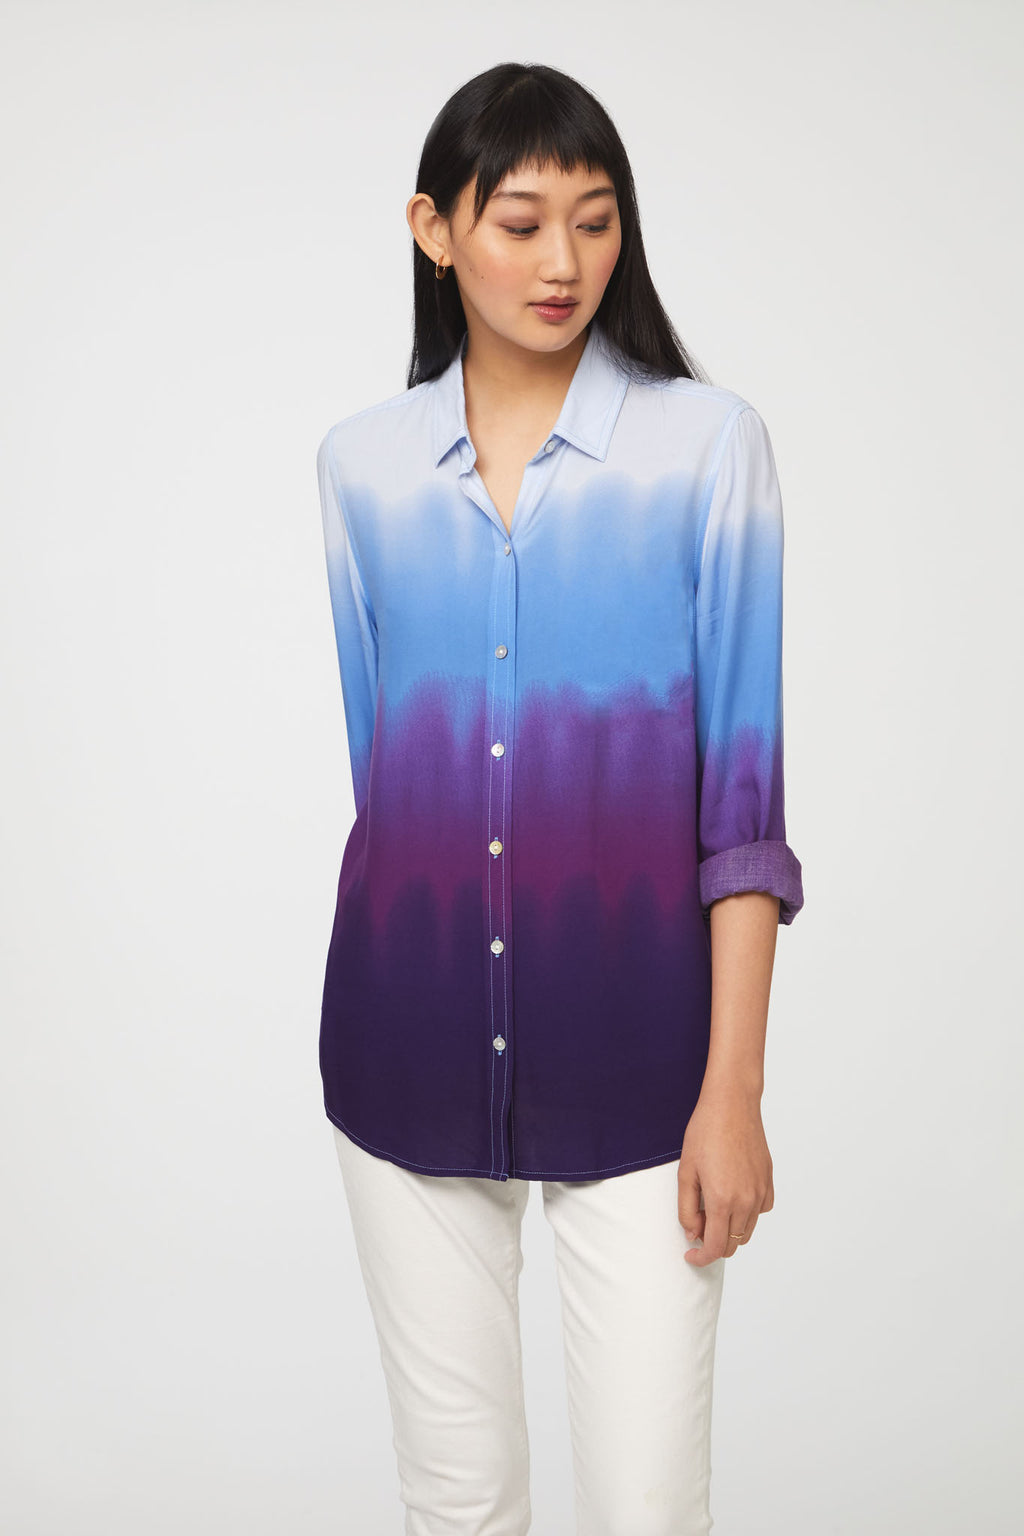 woman wearing a long sleeve, button-down, blue and purple dip dye shirt